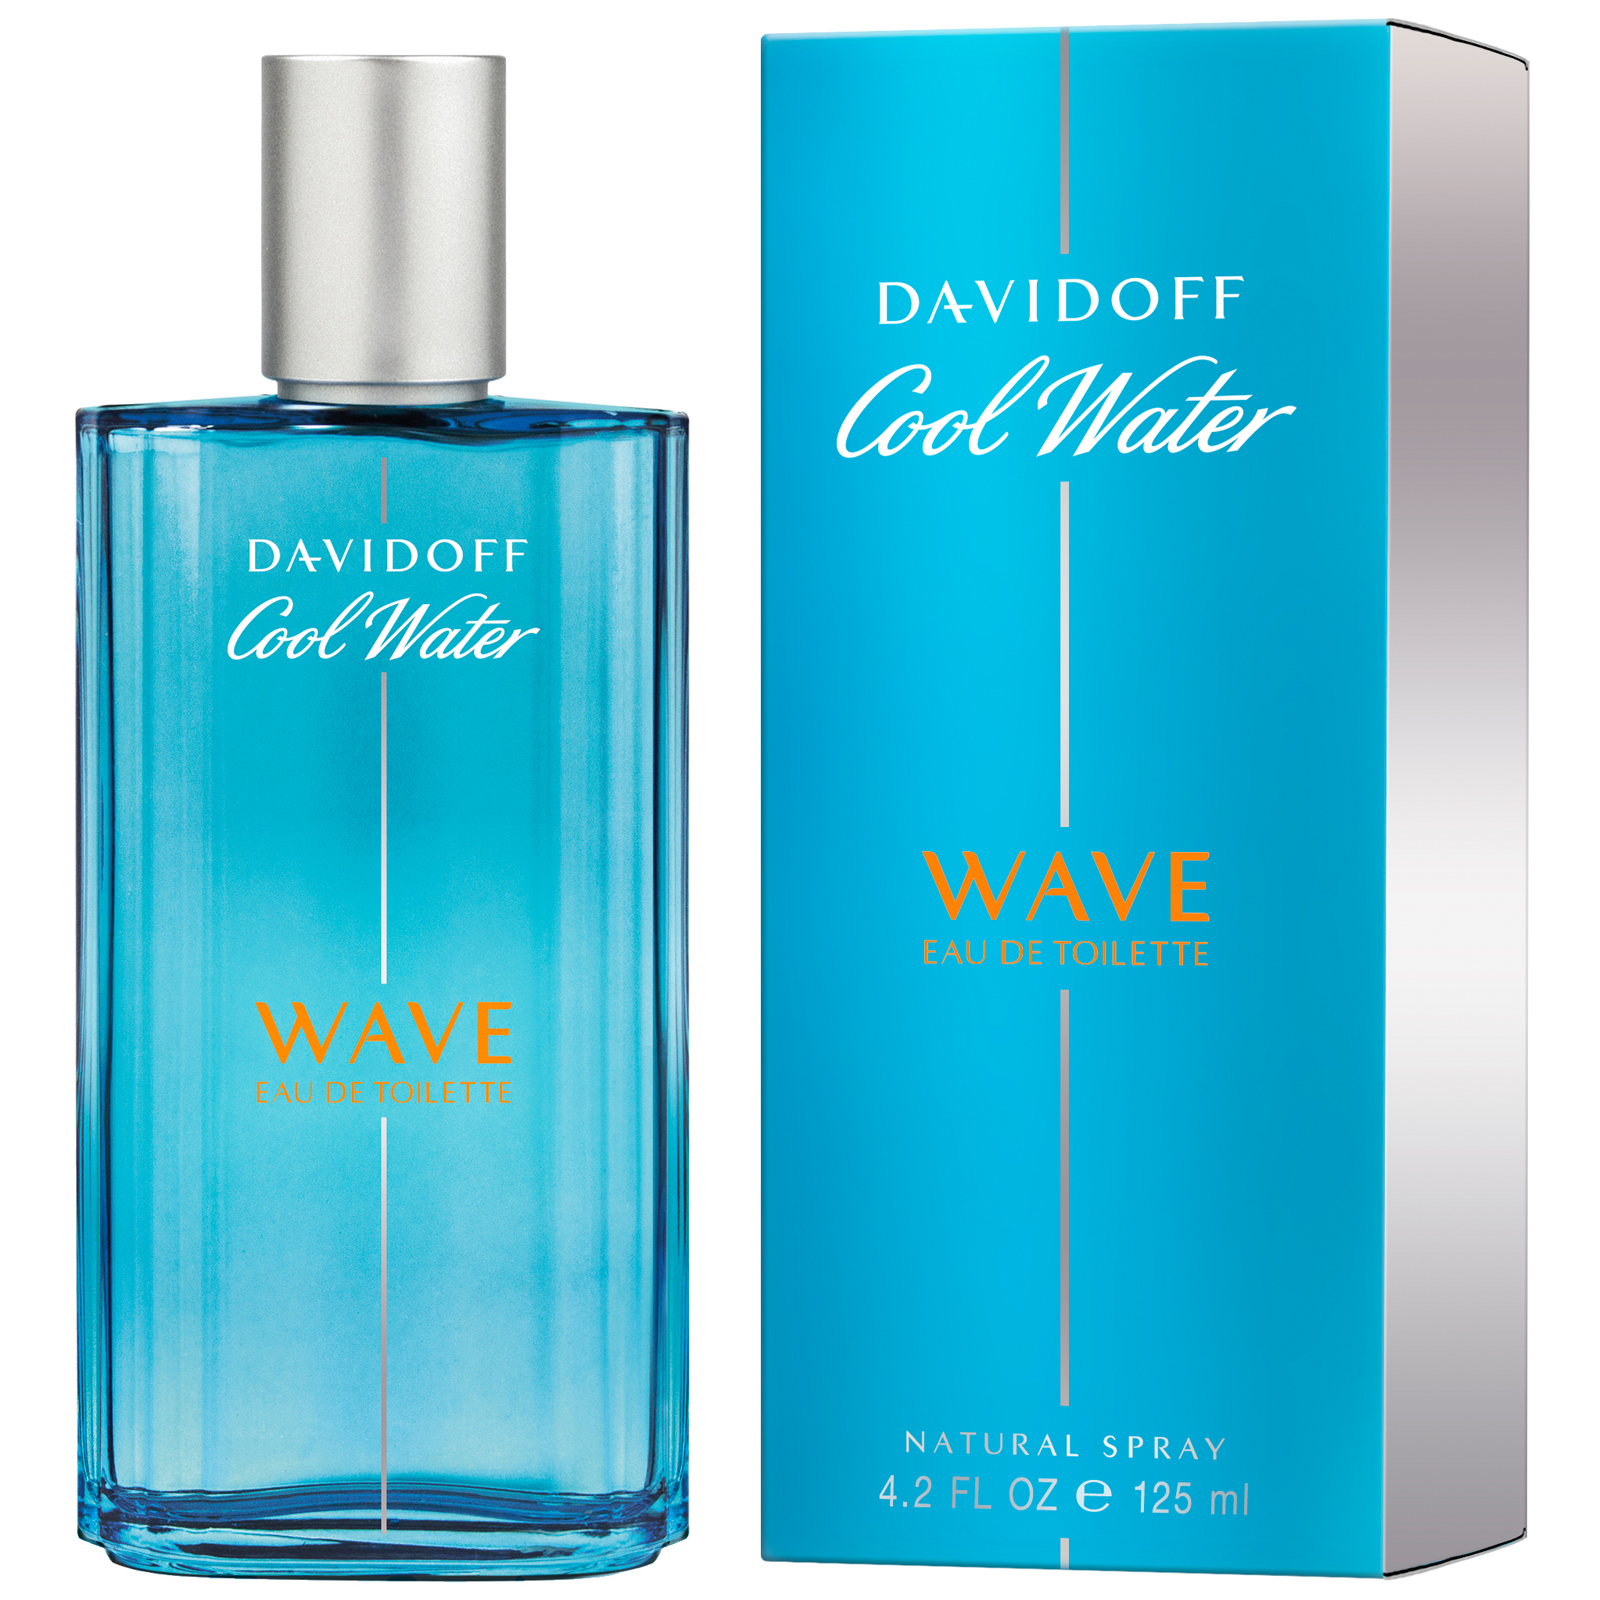 Davidoff Cool Water Men's Aftershave